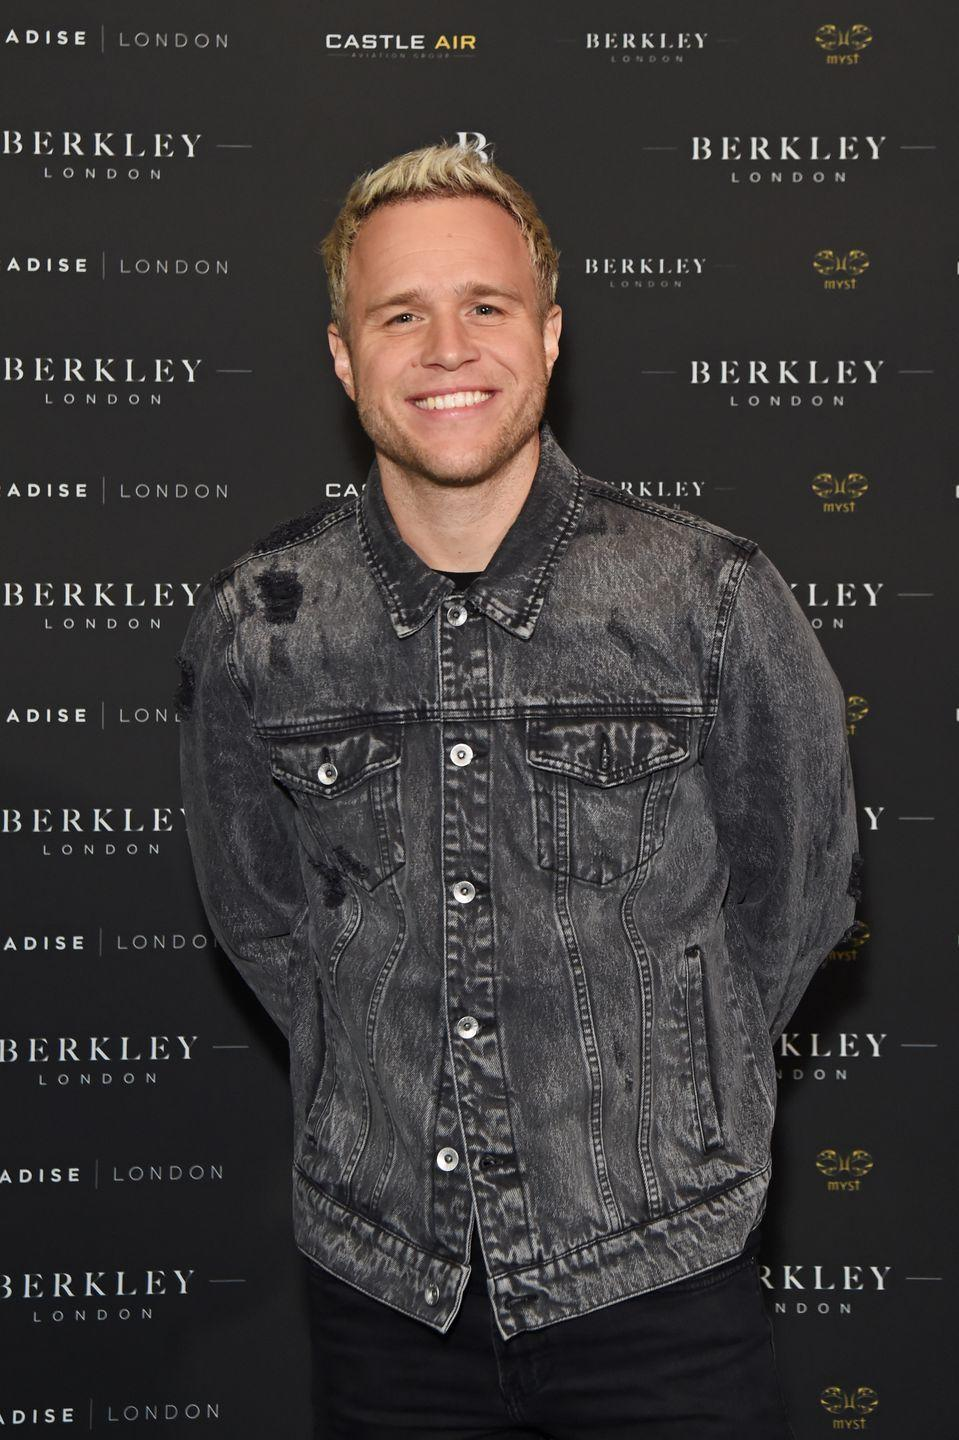 """<p>After knee surgery and a subsequent physical transformation, the singer made sure that his new physique didn't go to waste in quarantine. """"Right now, we can't get to the gym,"""" Murs told <em><a href=""""https://www.menshealth.com/fitness/a32144209/olly-murs-workout-at-home/"""" rel=""""nofollow noopener"""" target=""""_blank"""" data-ylk=""""slk:Men's Health"""" class=""""link rapid-noclick-resp"""">Men's Health</a></em>. """"But we can still train. We can still do it at home.""""</p><p><a class=""""link rapid-noclick-resp"""" href=""""https://www.youtube.com/watch?v=JIuZc-HNfGc&t=112s"""" rel=""""nofollow noopener"""" target=""""_blank"""" data-ylk=""""slk:Watch here"""">Watch here</a></p>"""